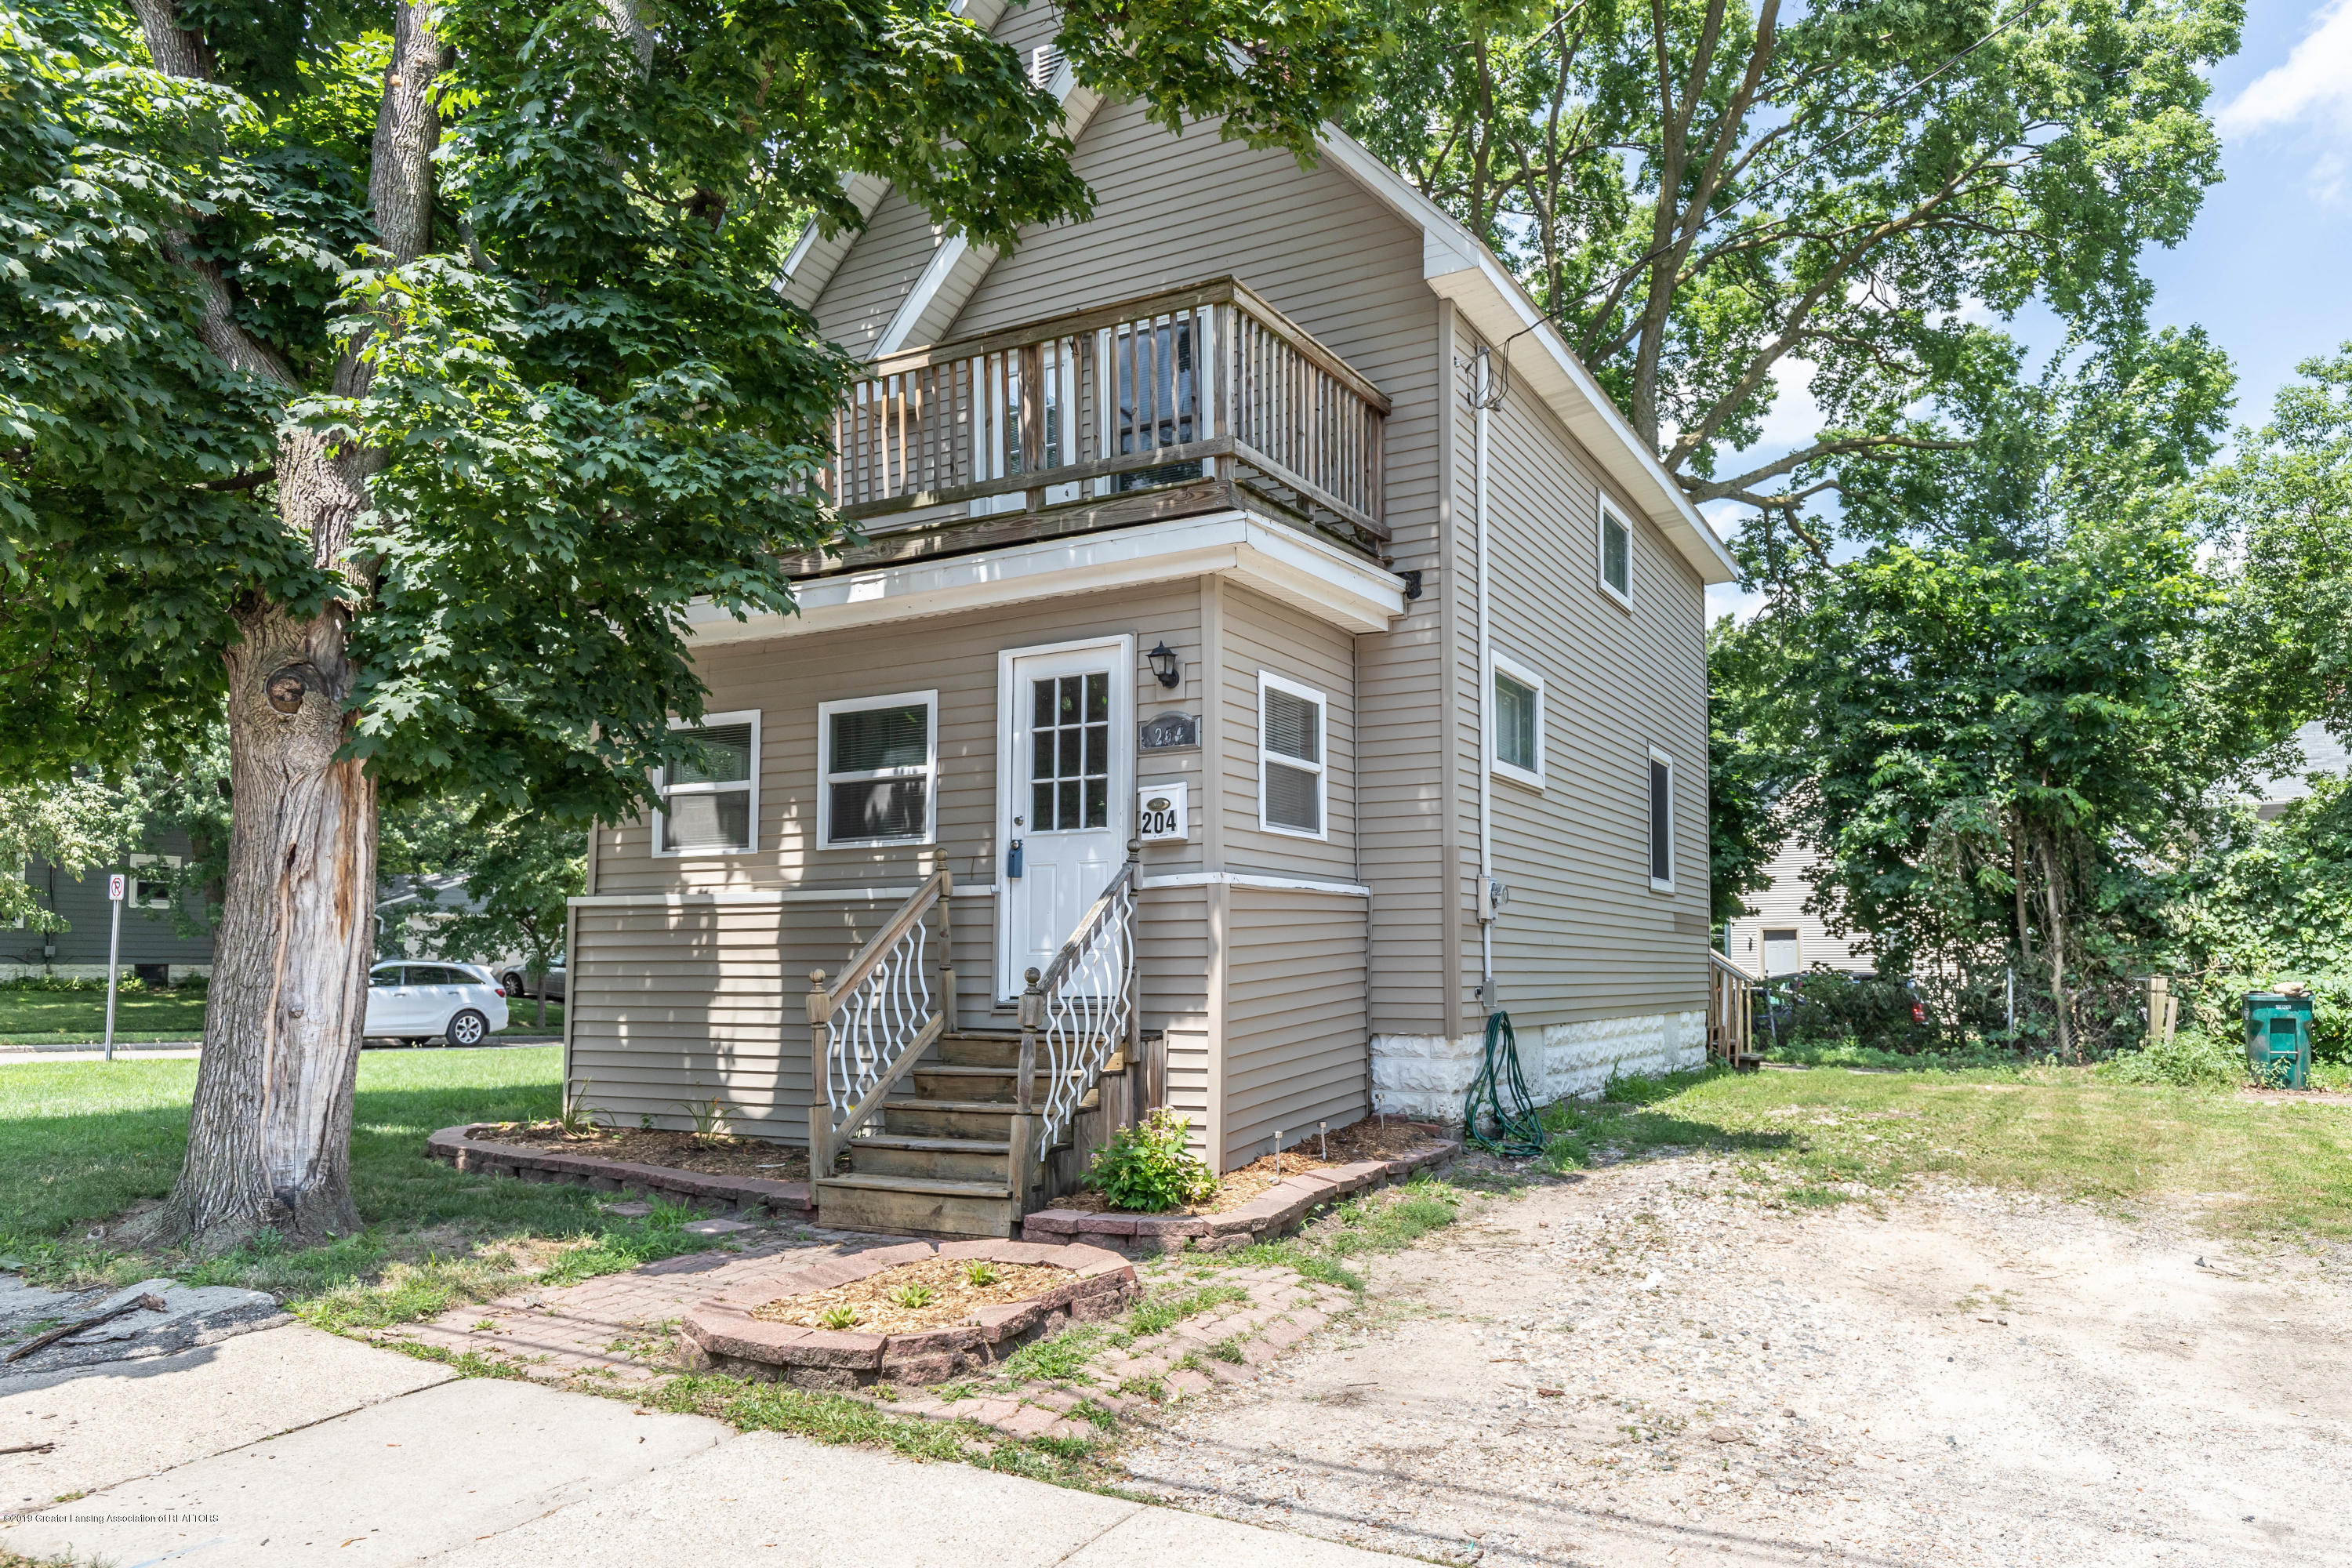 204 Woodlawn Ave - Front - 1